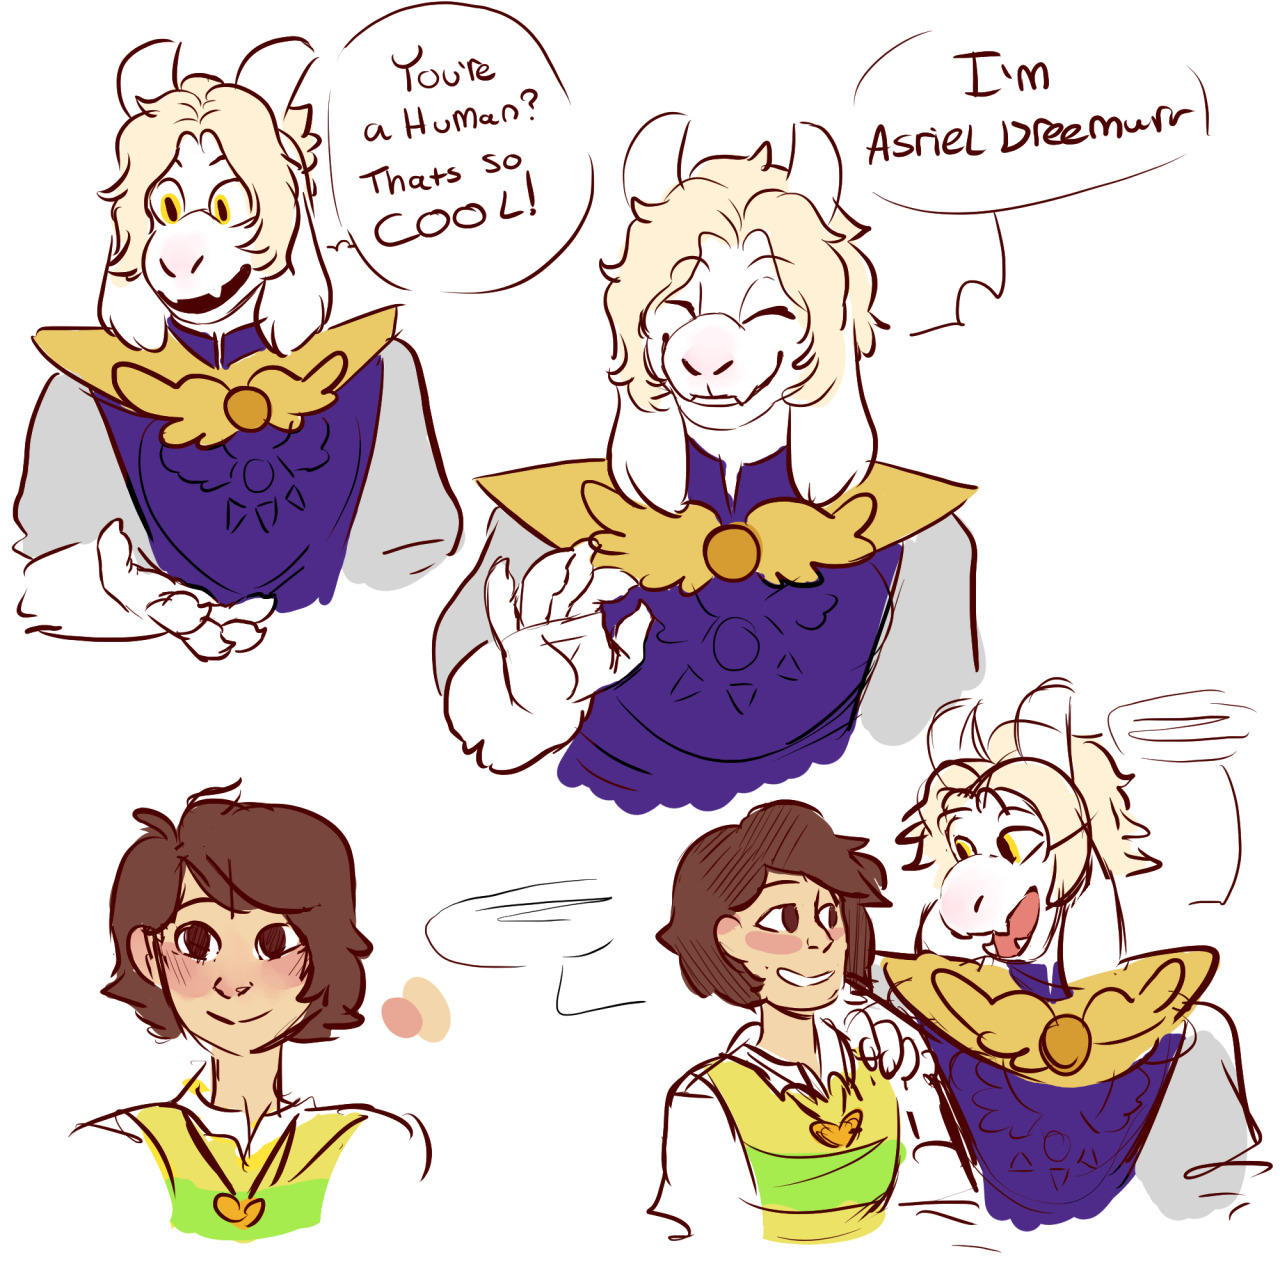 Prince Asriel And Frisk